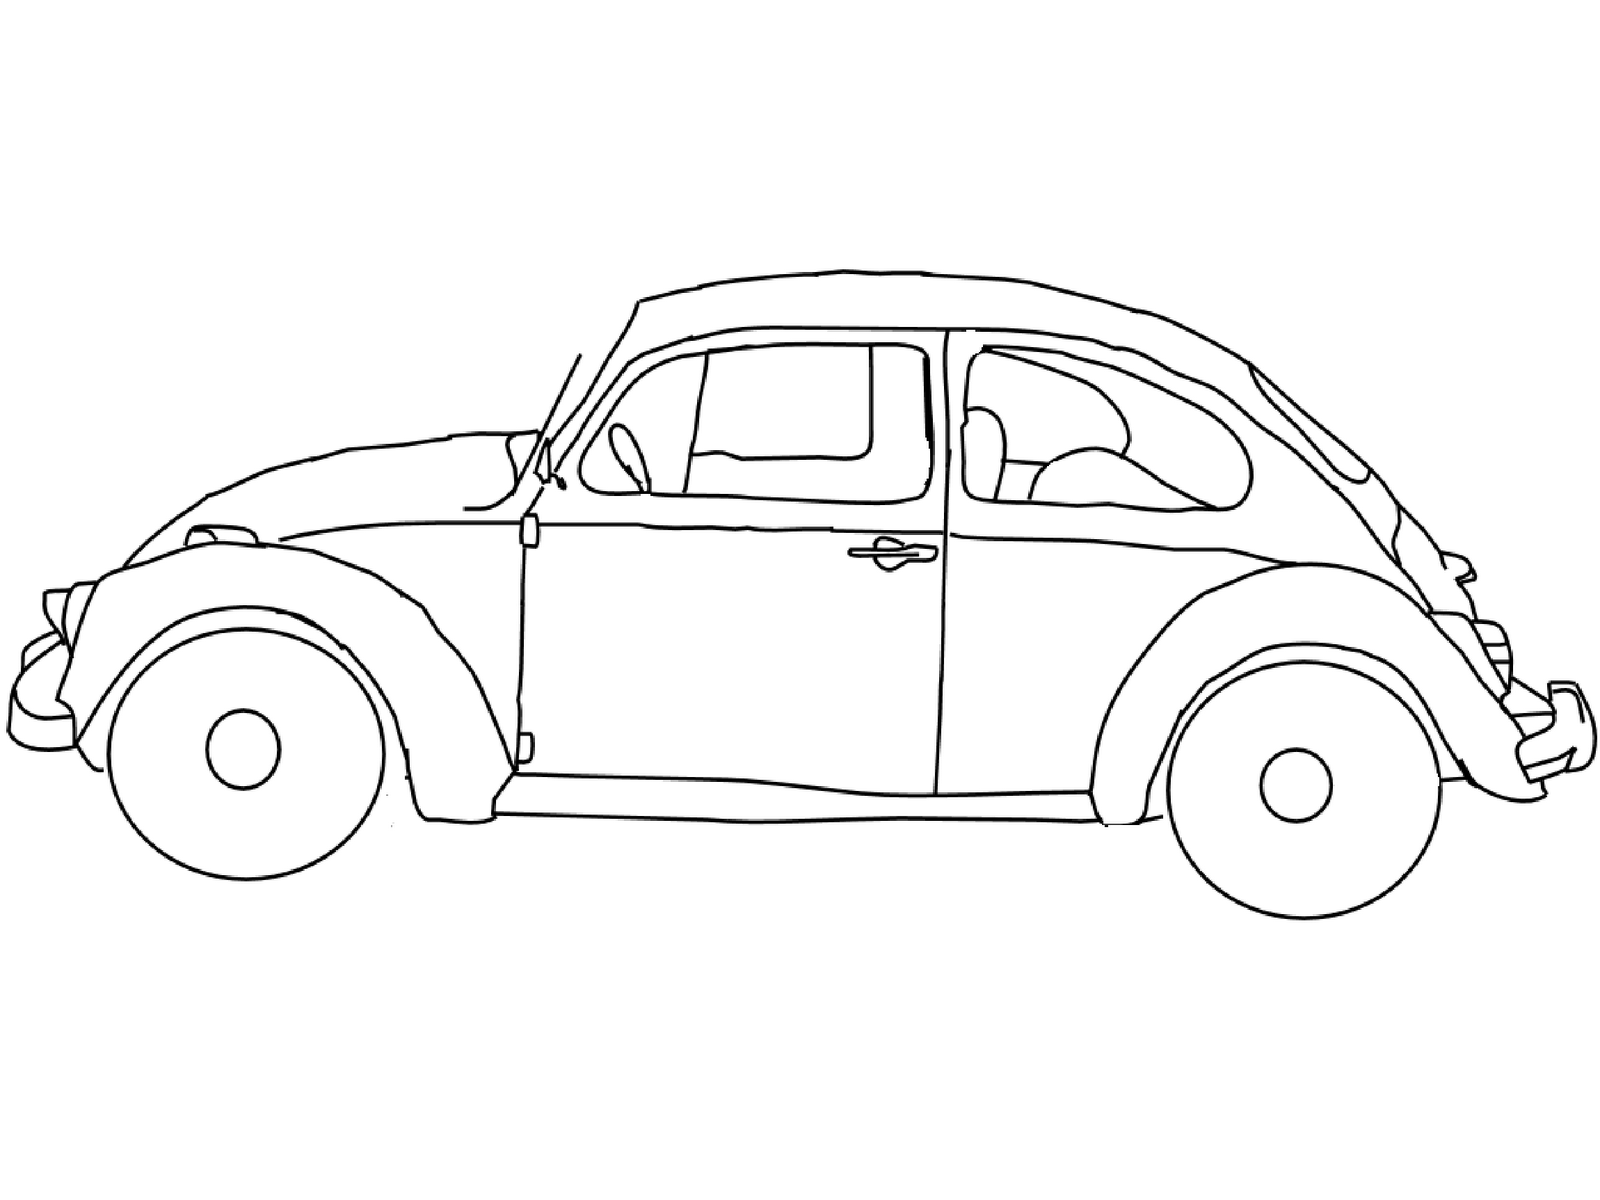 drawing of a vw bug | Voiture coccinelle : coloriages | free ...